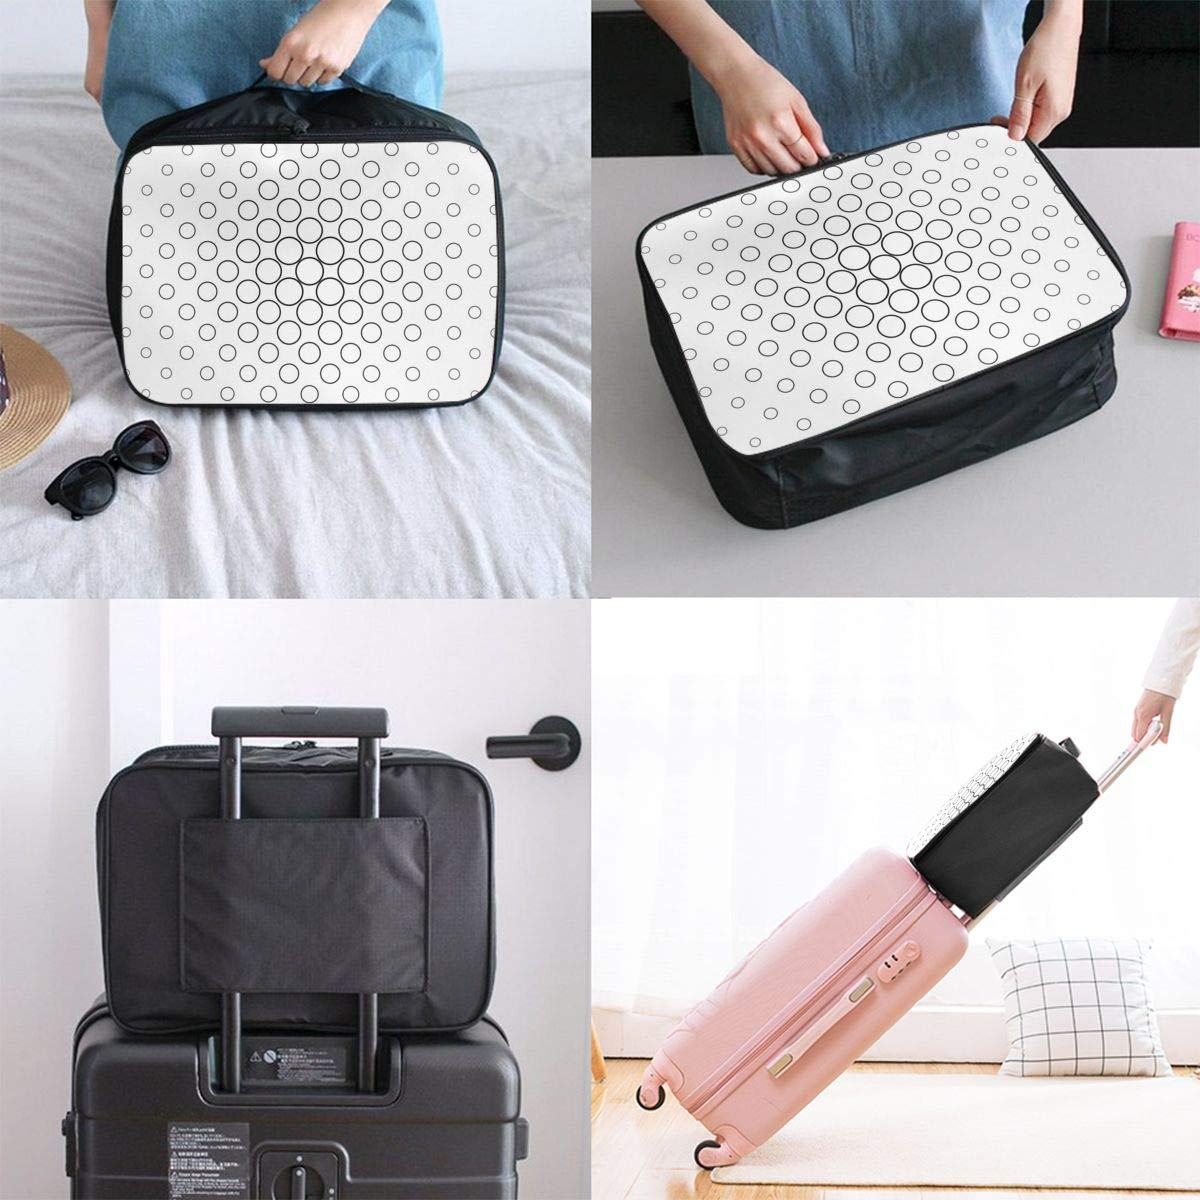 Black And White Shape Visual Art Travel Lightweight Waterproof Foldable Storage Carry Luggage Large Capacity Portable Luggage Bag Duffel Bag